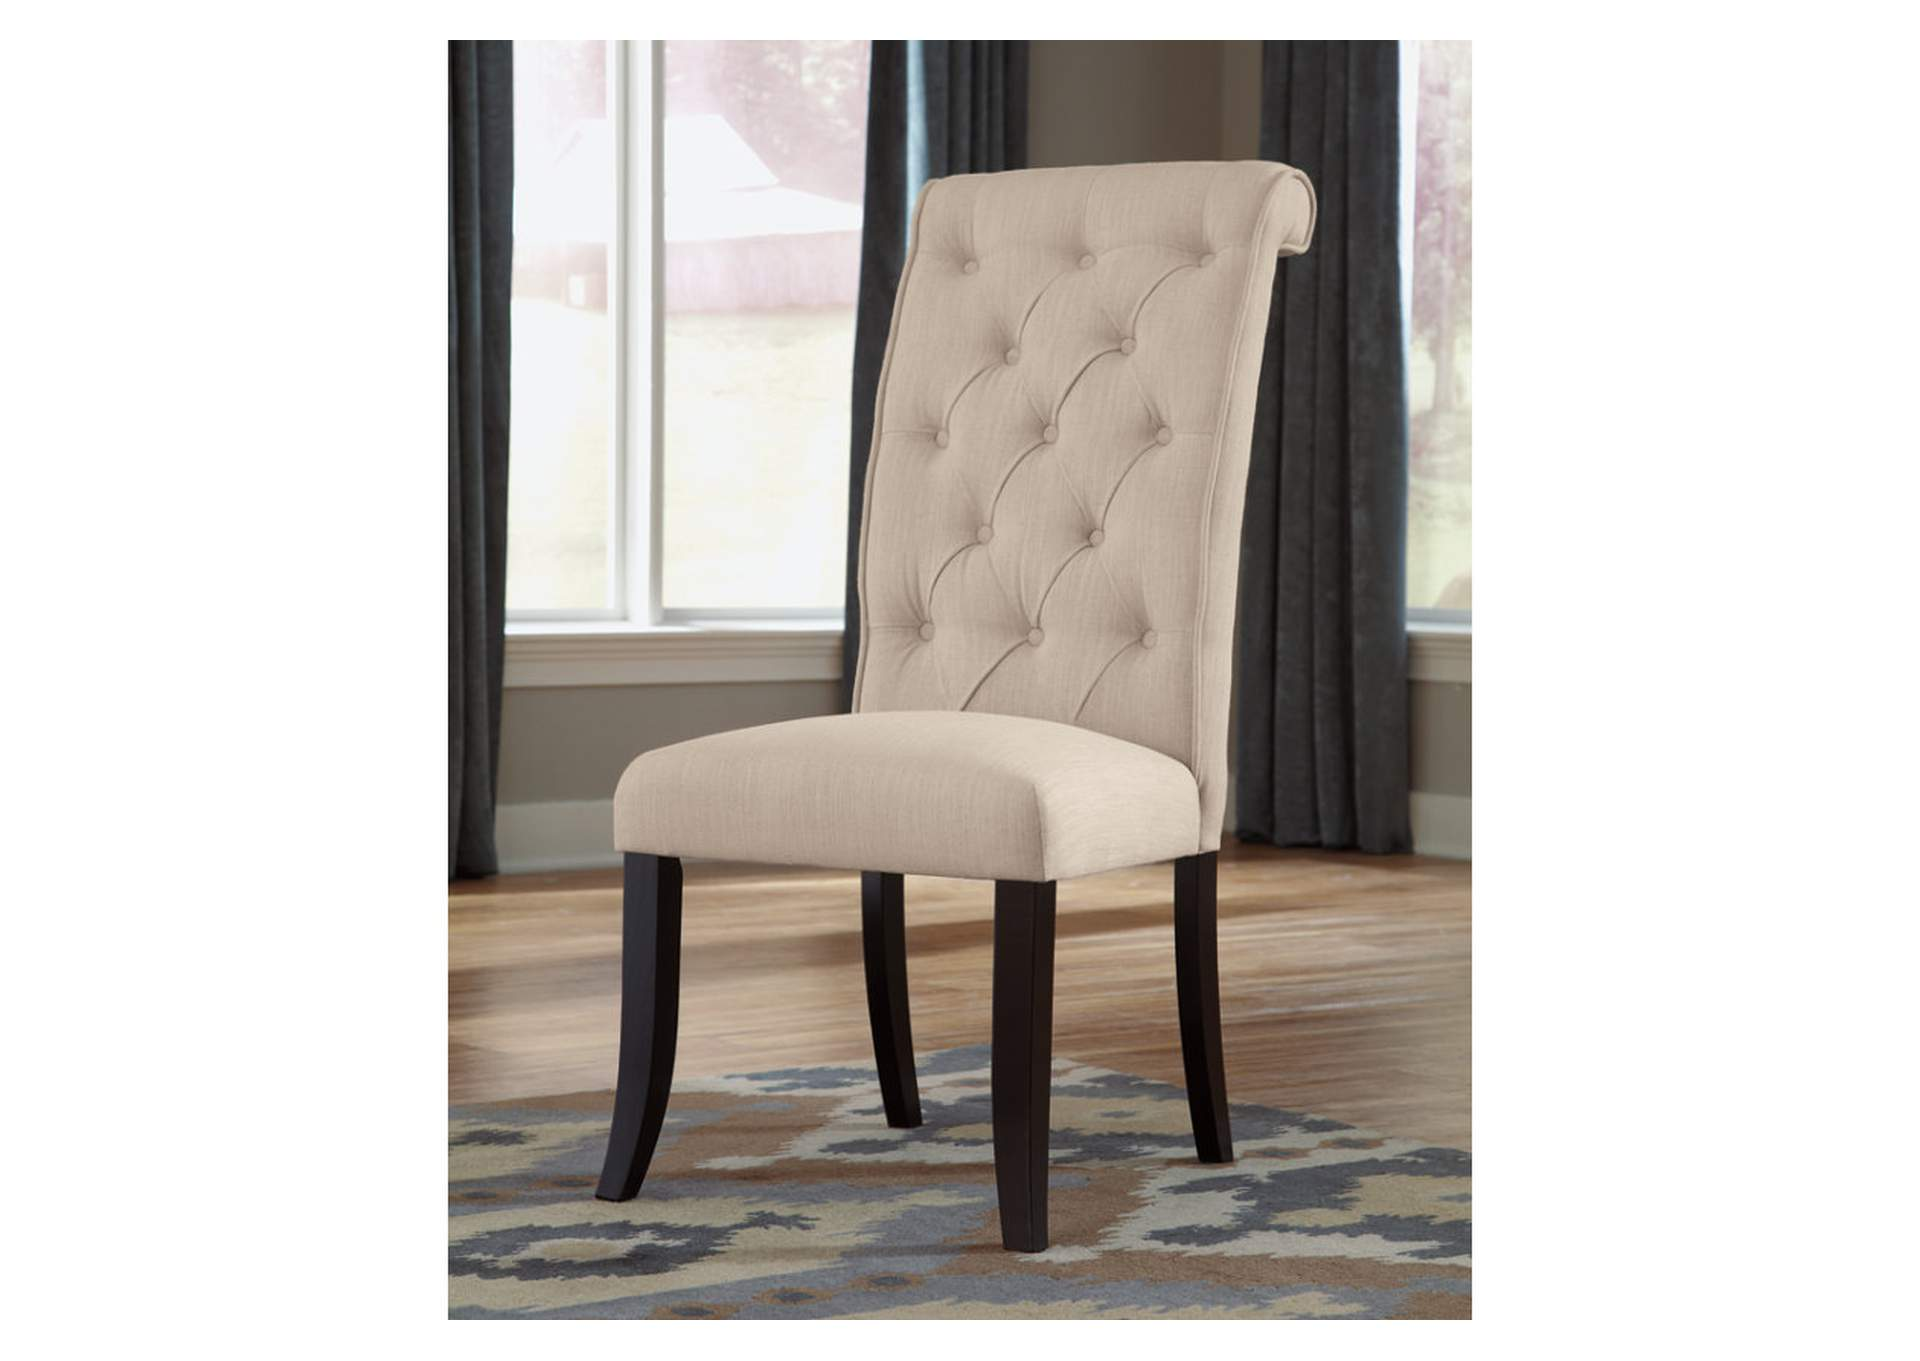 Ramos Furniture Tripton Upholstered Side Chair Set Of 2